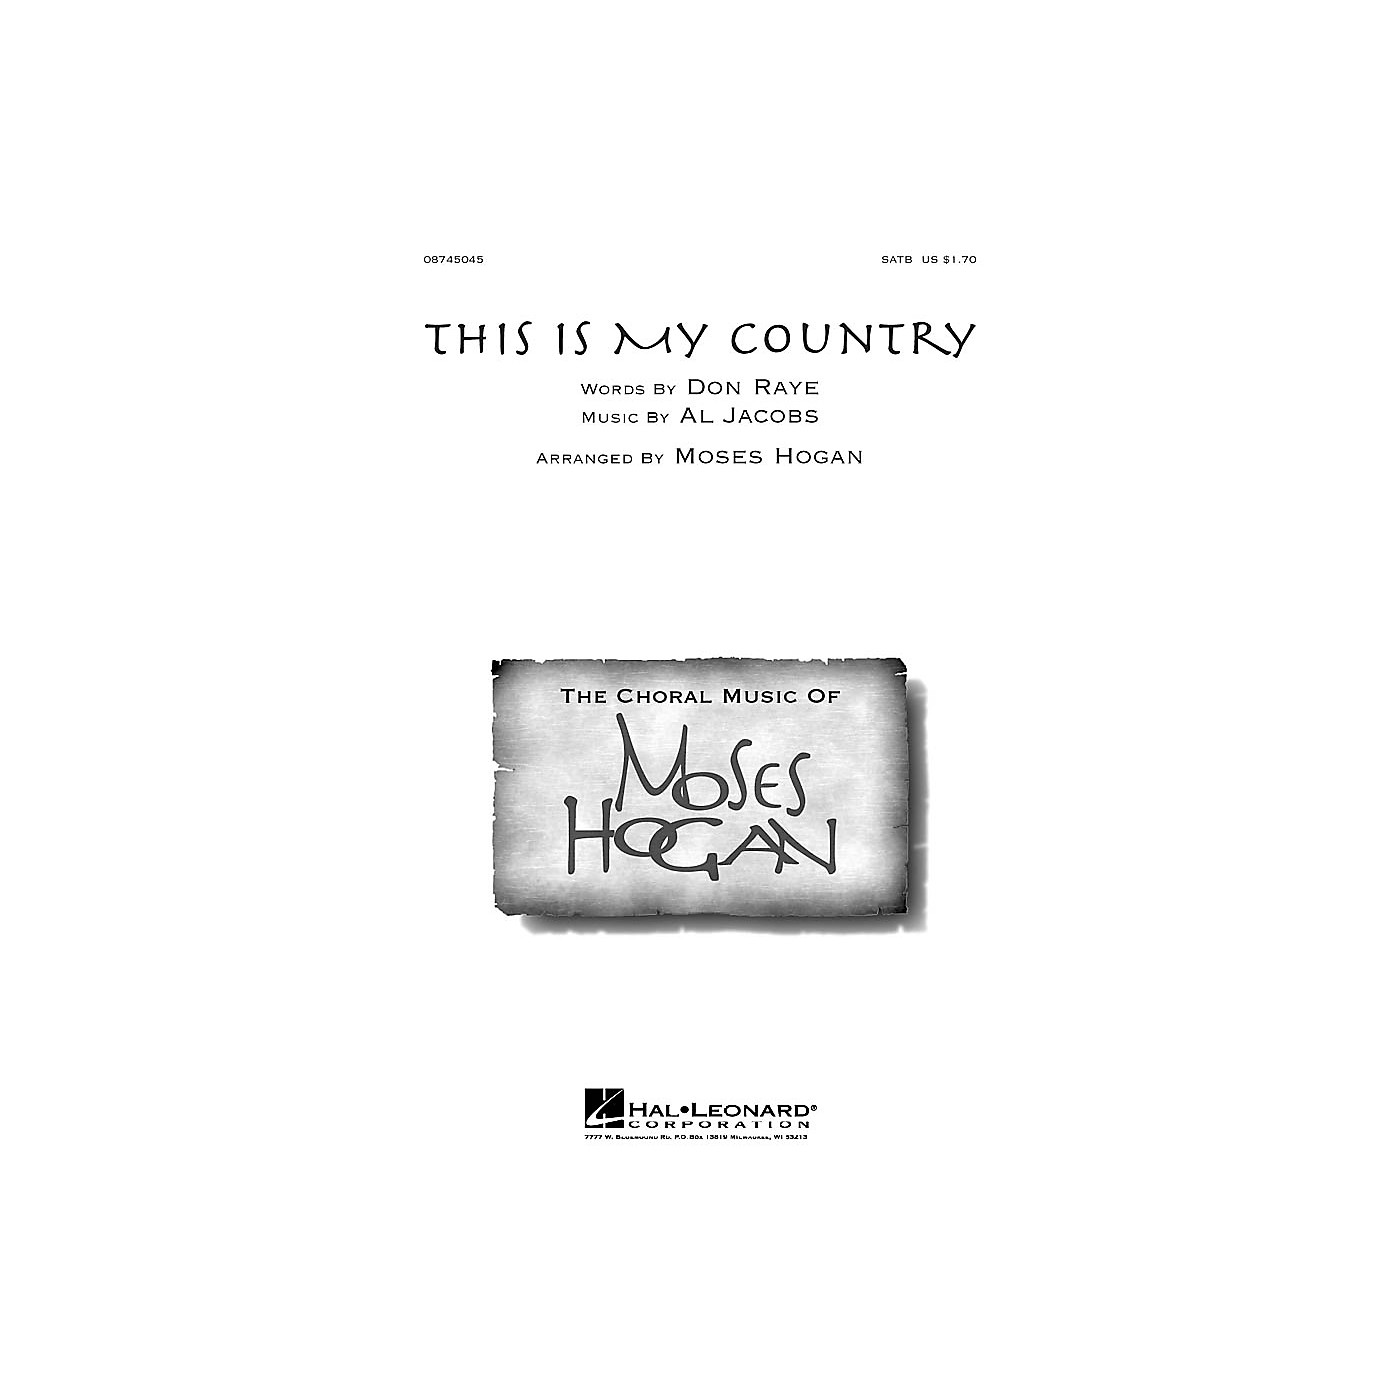 Hal Leonard This Is My Country SATB arranged by Moses Hogan thumbnail